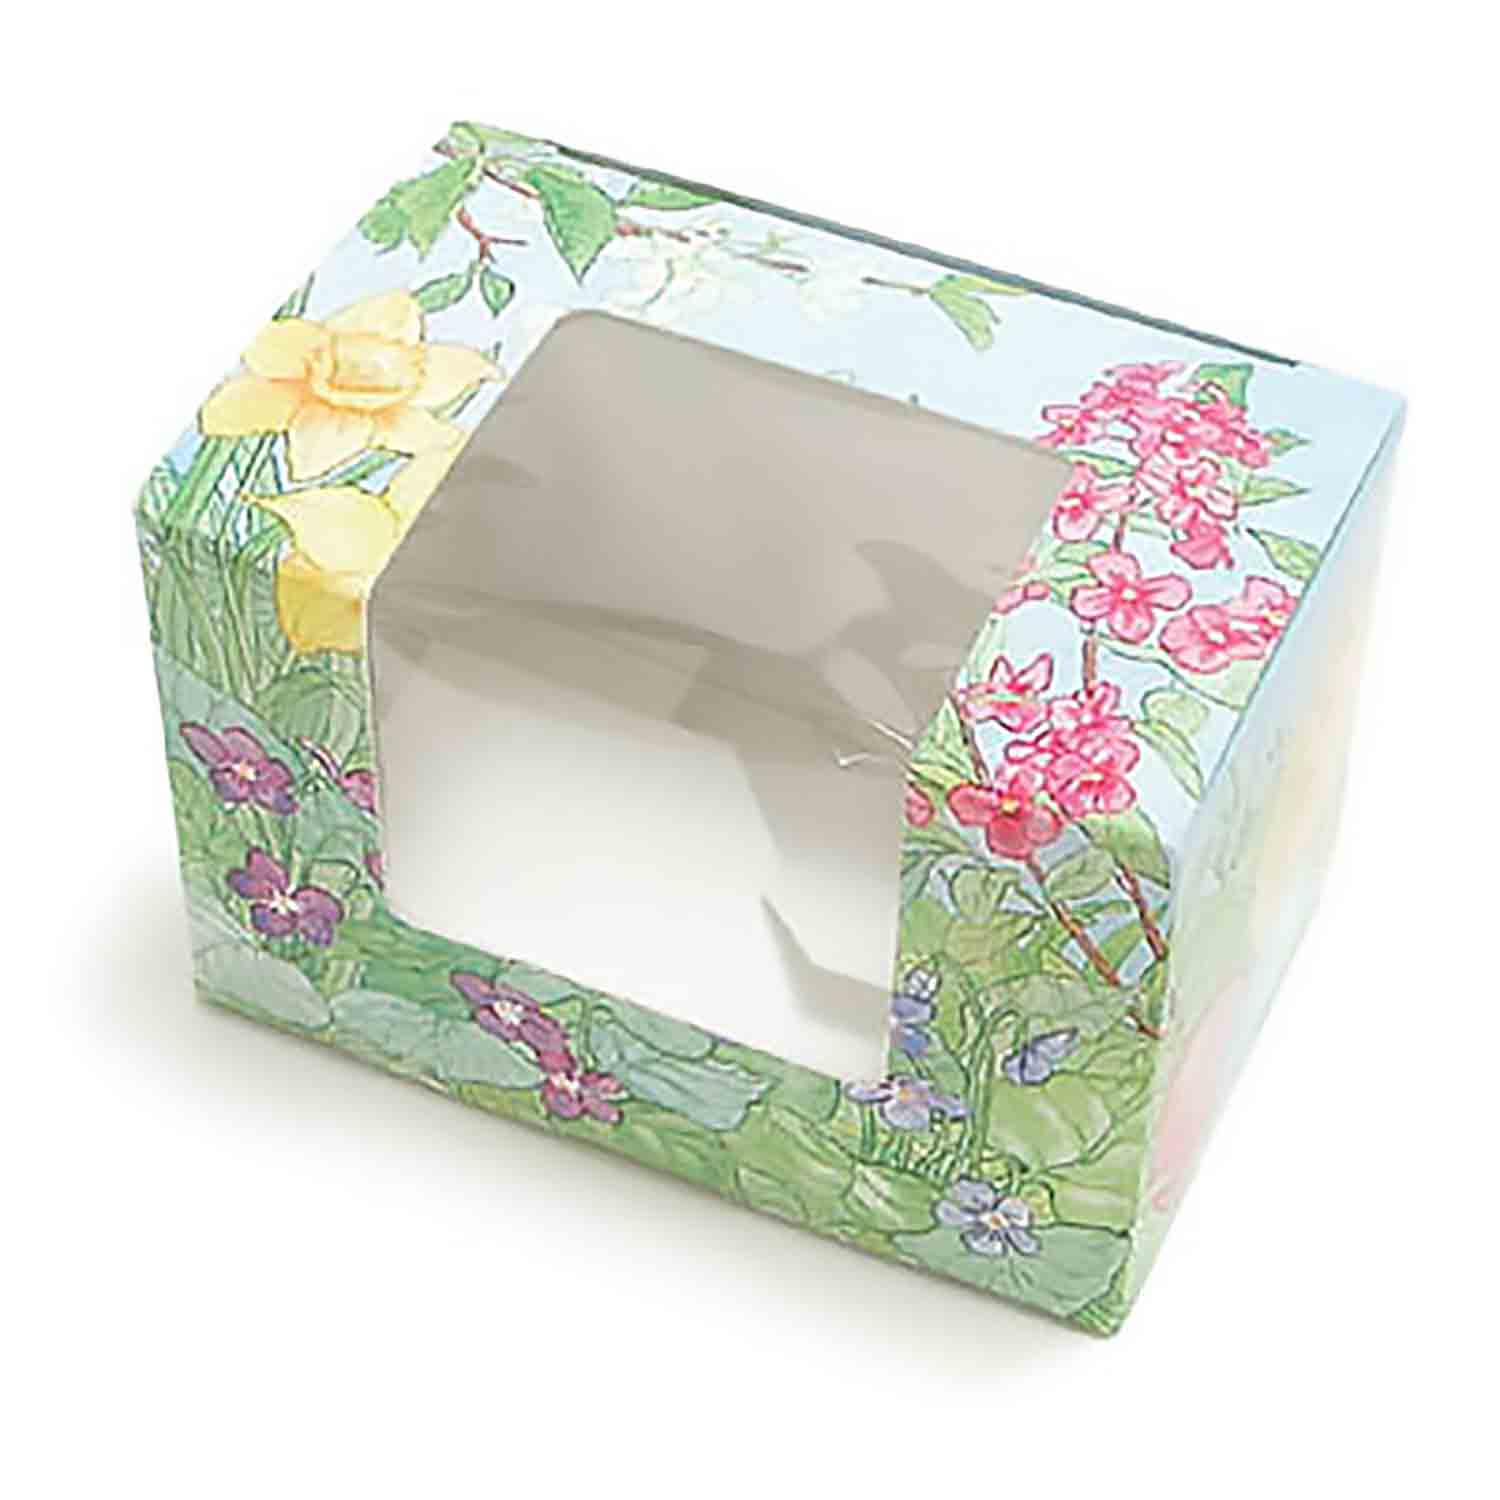 1/2 lb. Easter Garden Egg Candy Box with Window